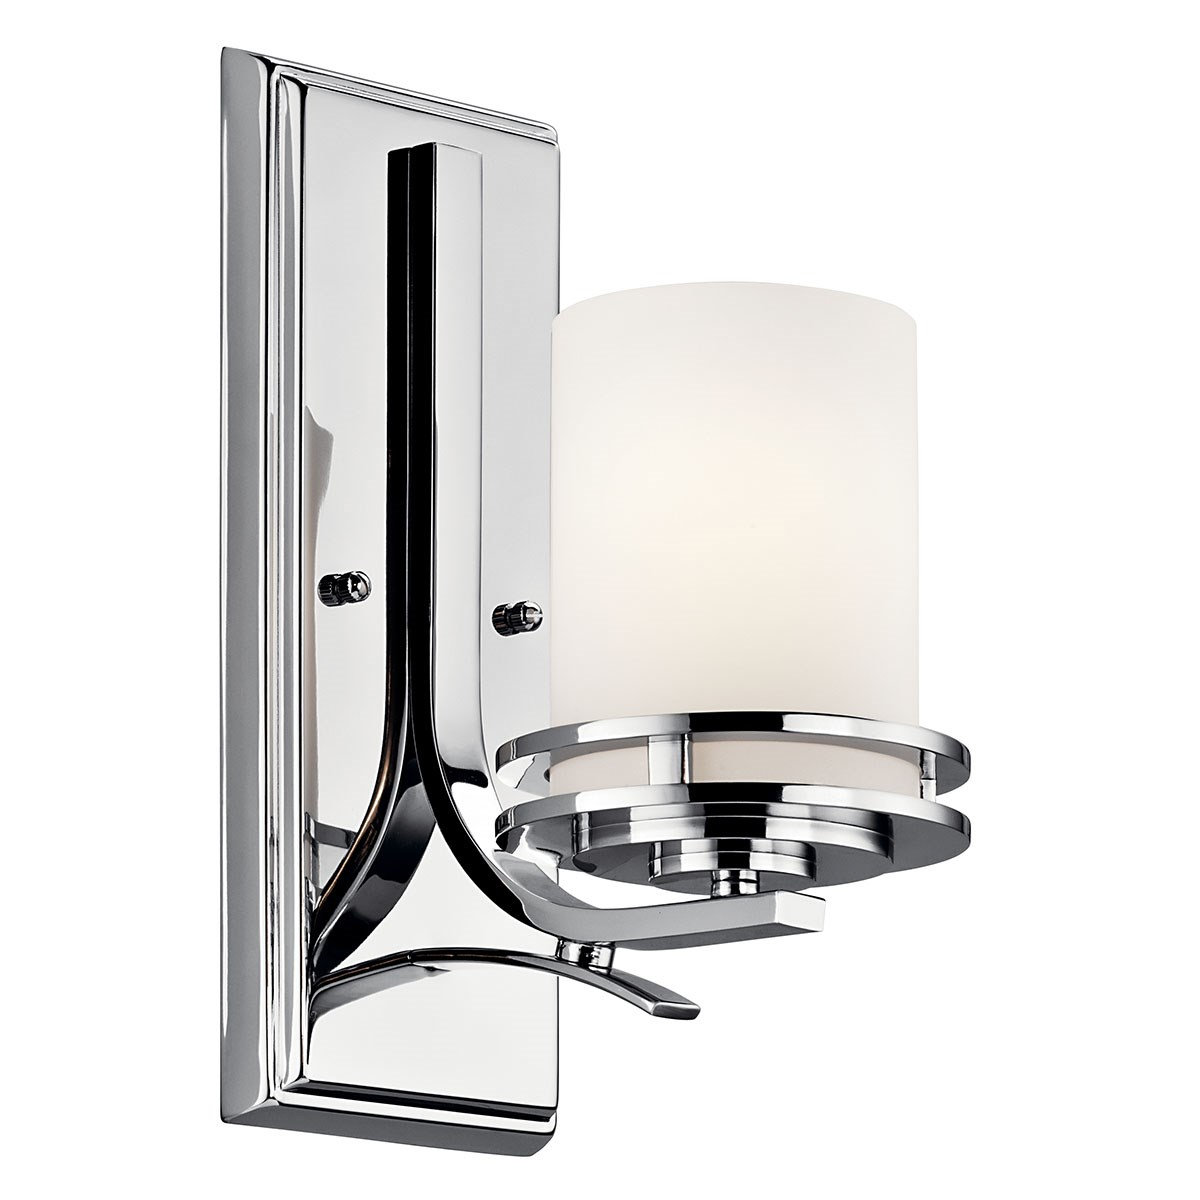 Hendrik™ 1 Light Wall Sconce Chrome